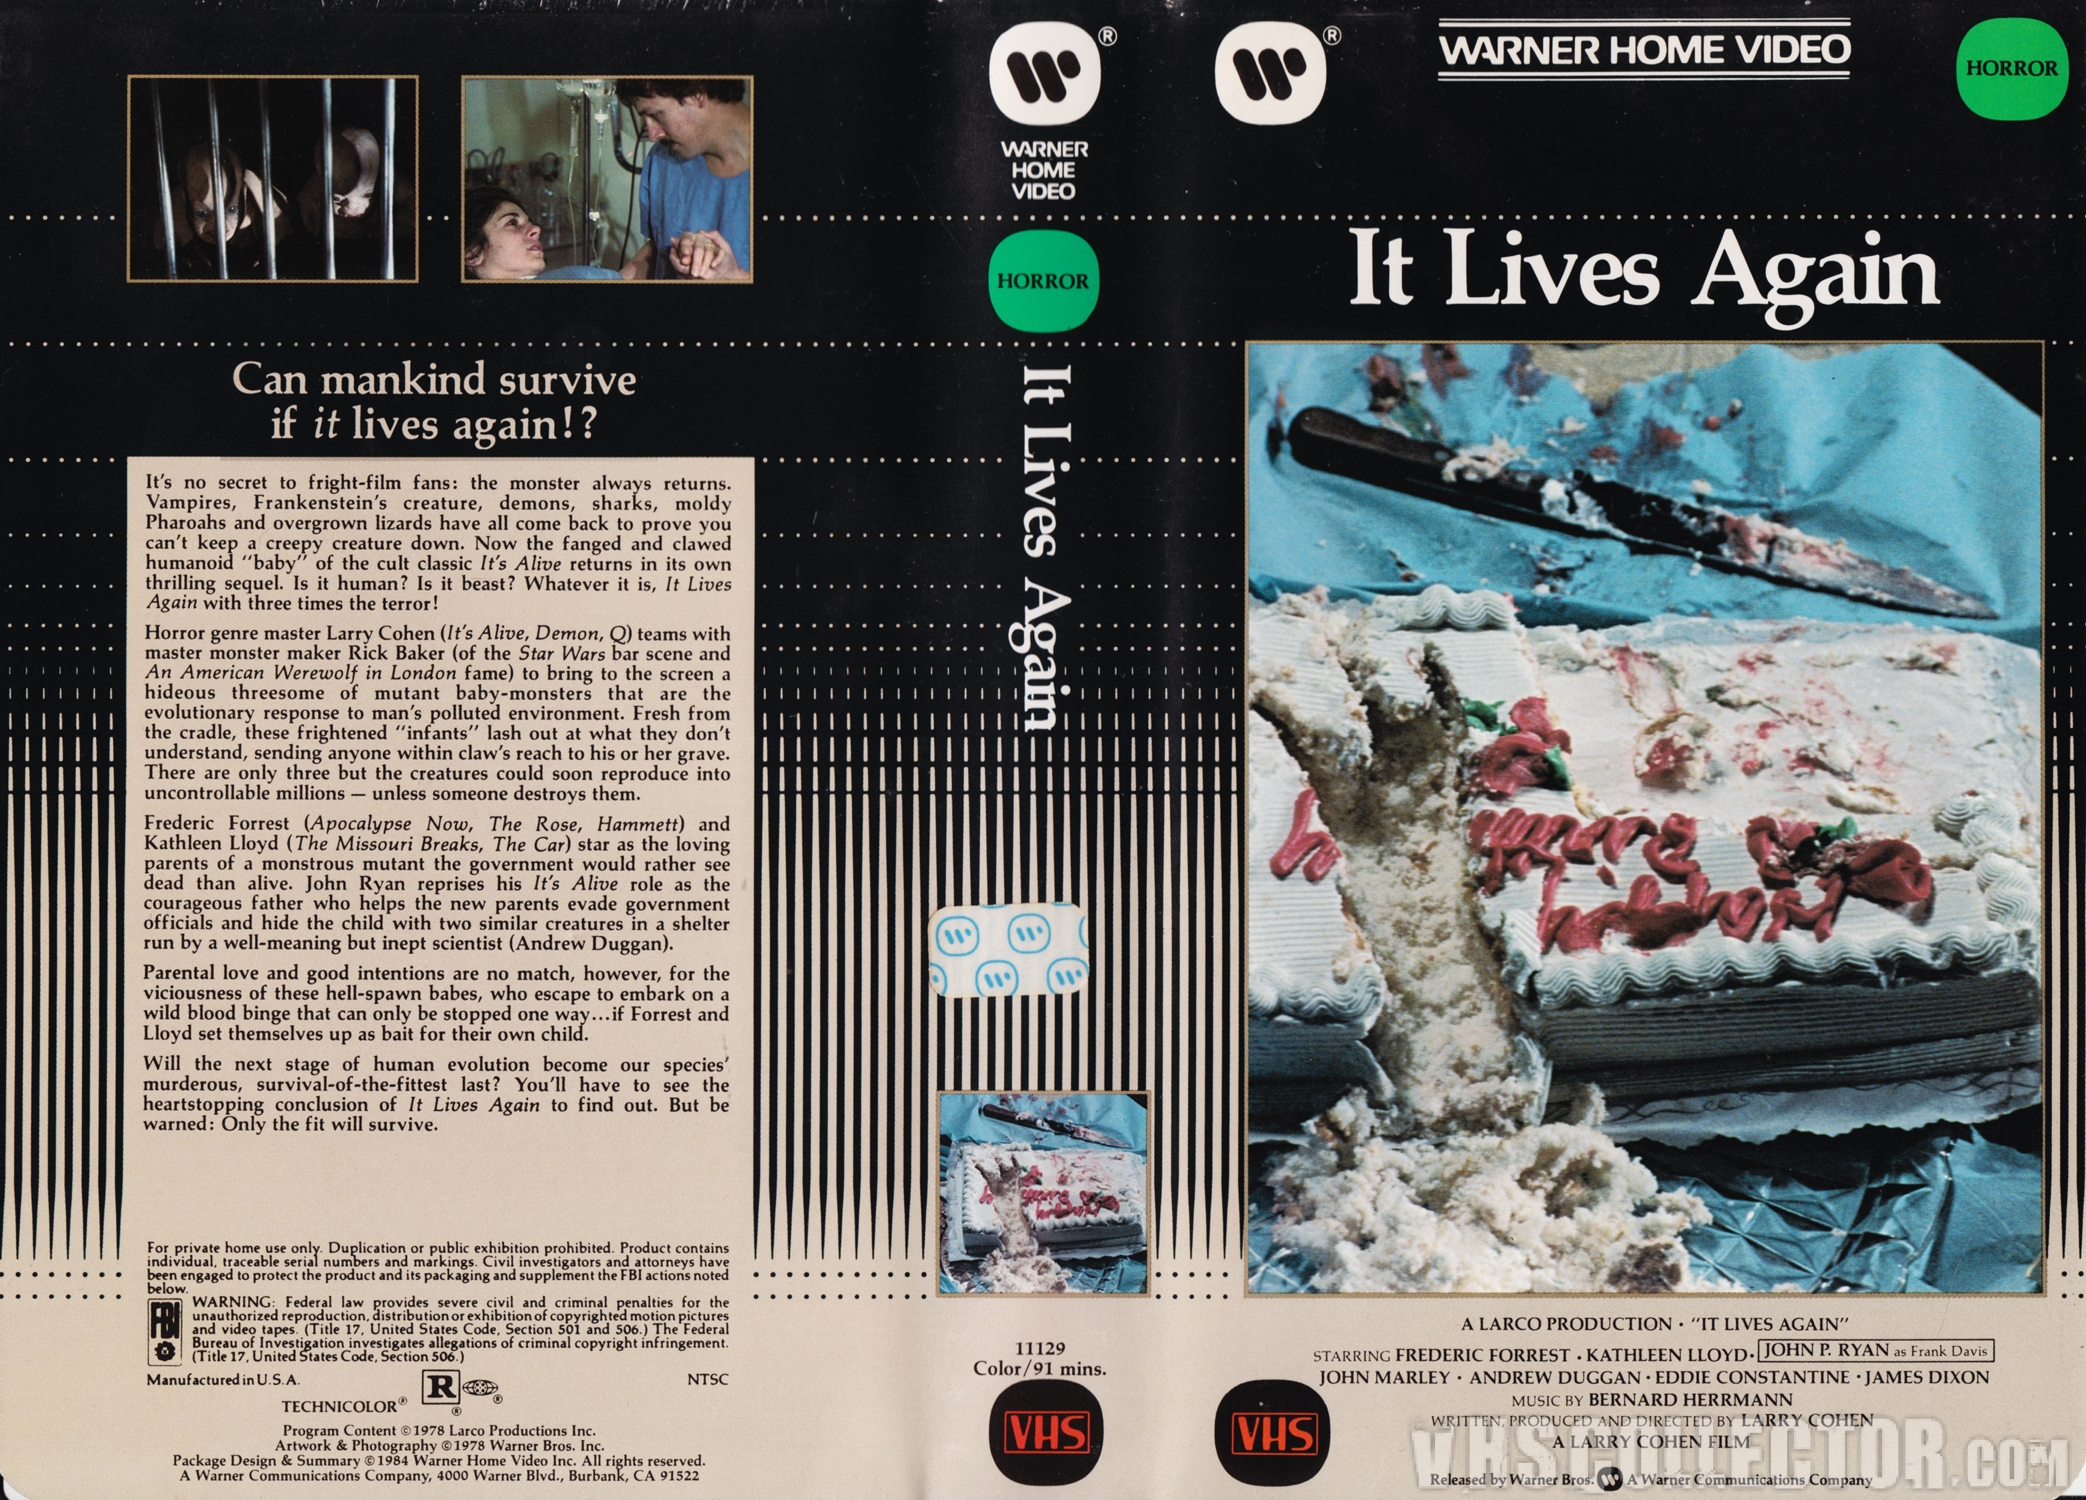 it lives again warner home video clamshell vhs vhscollector